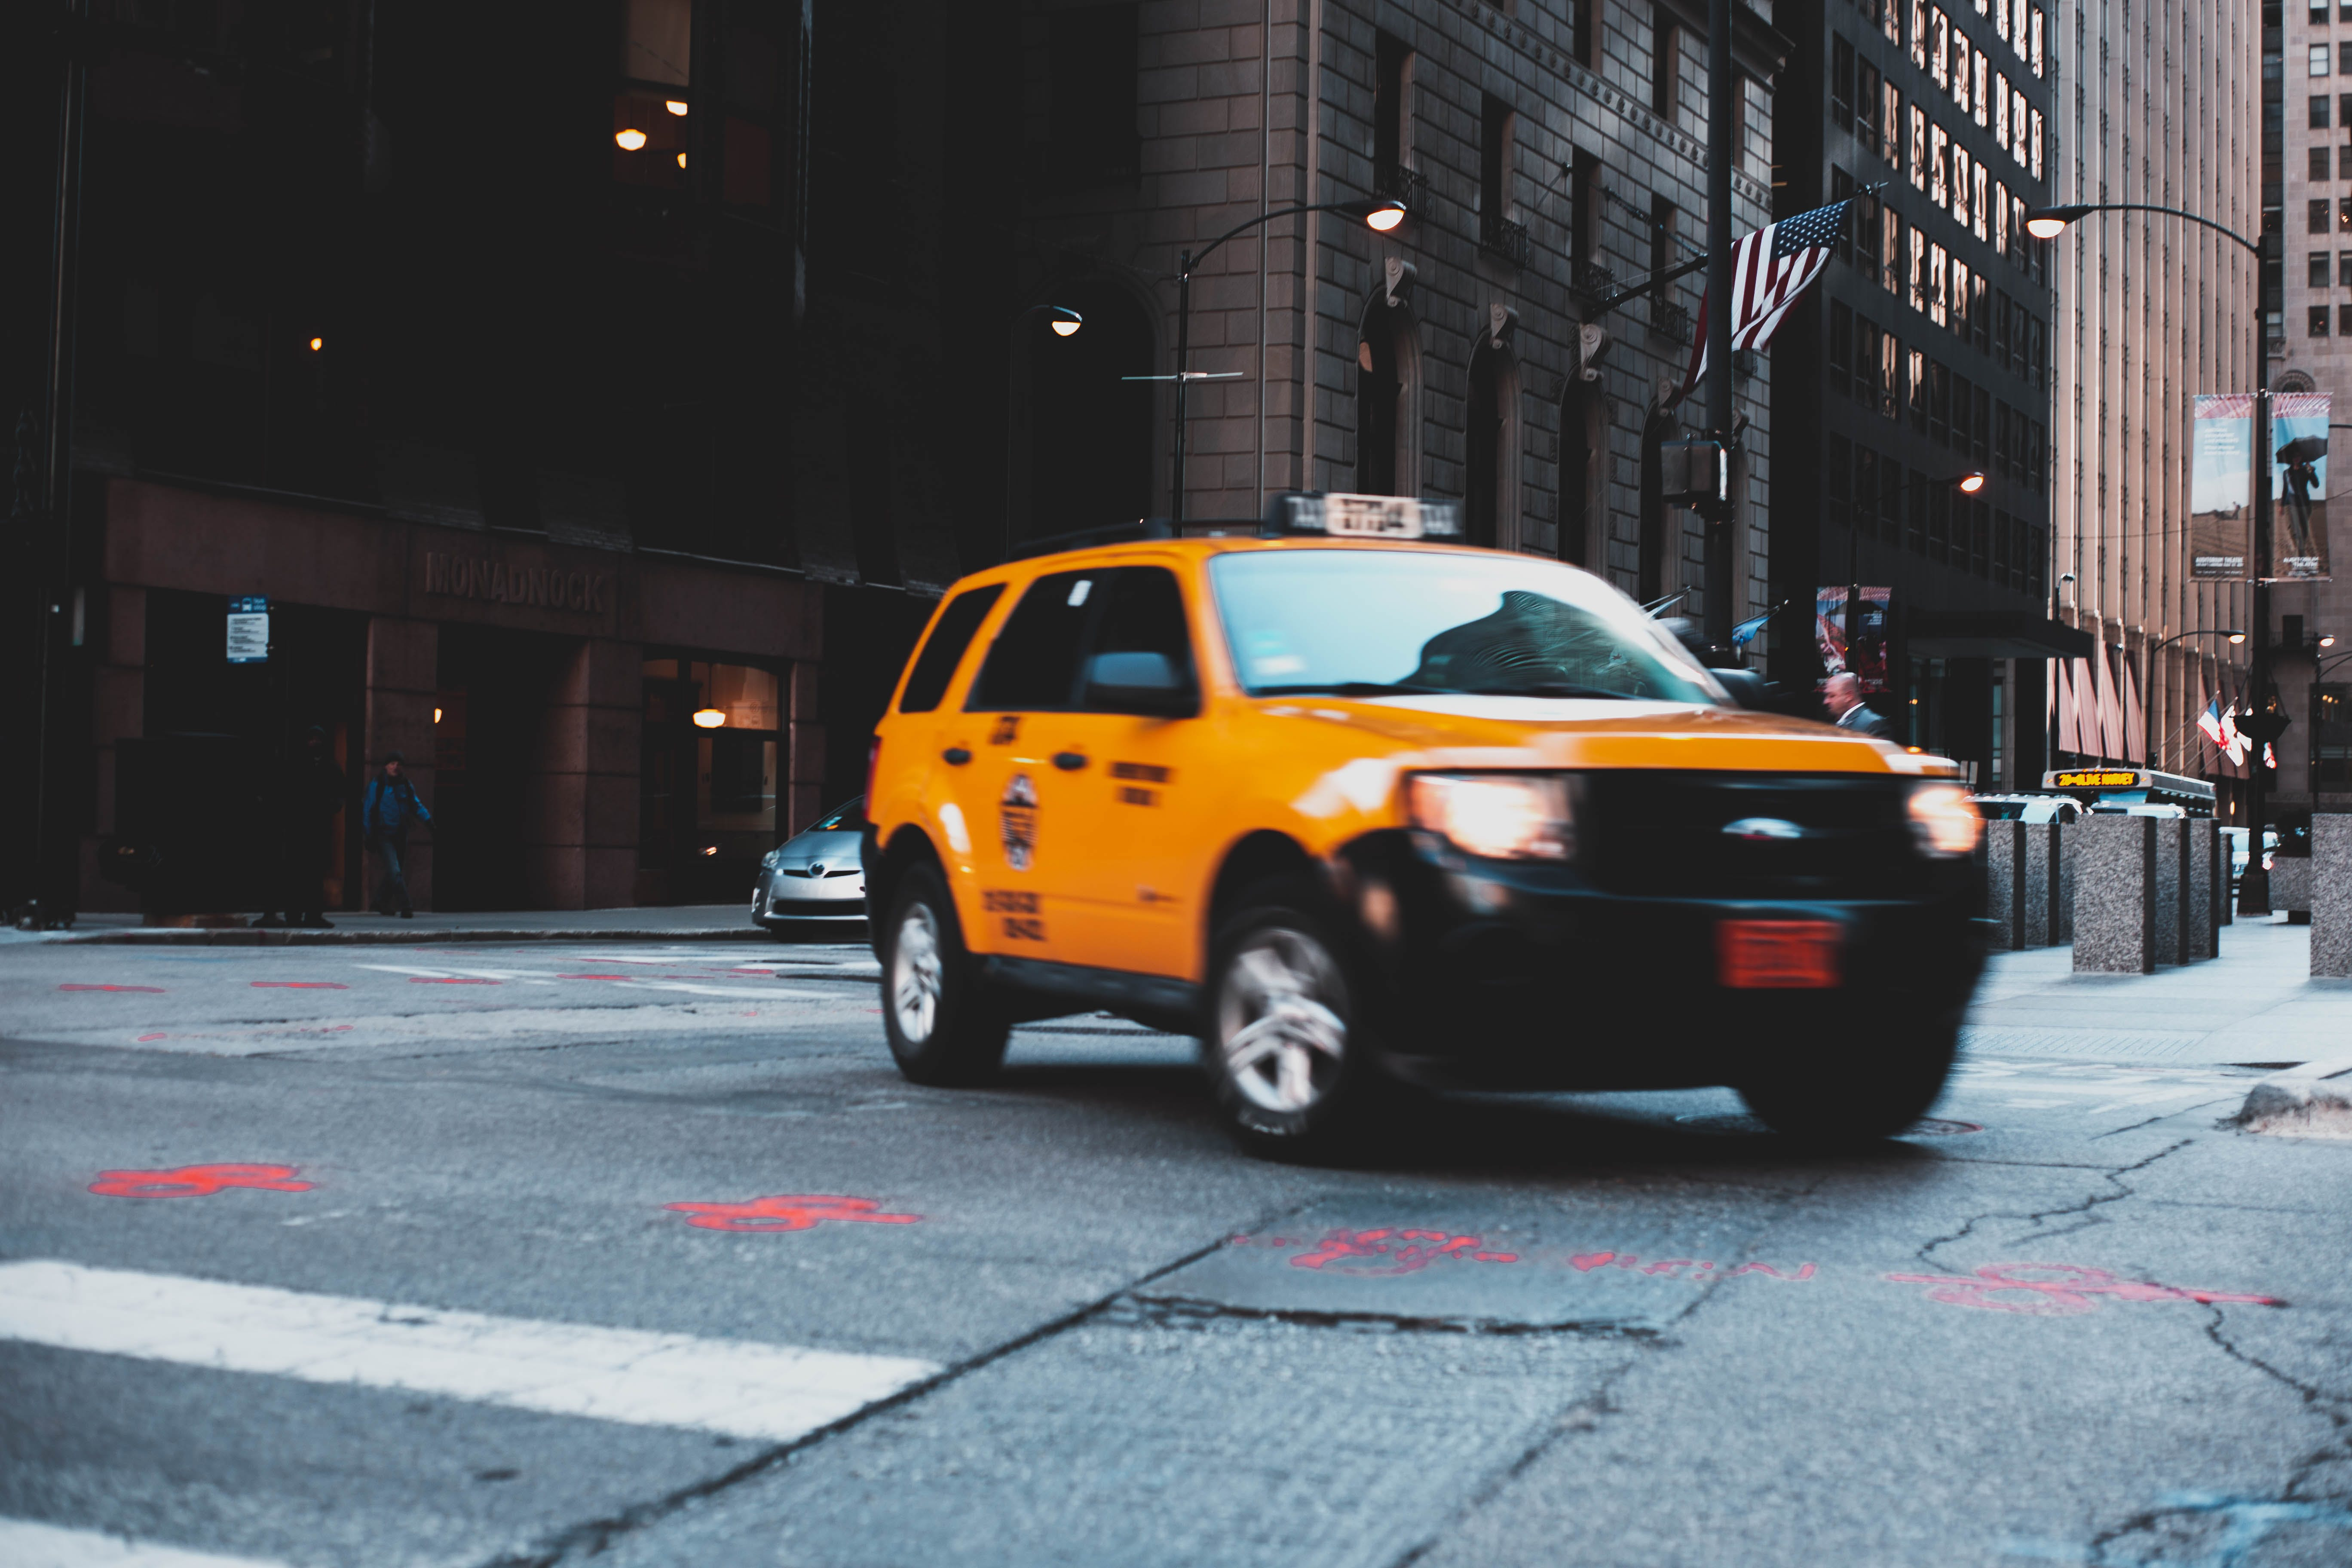 Taxi Making A Turn at the City